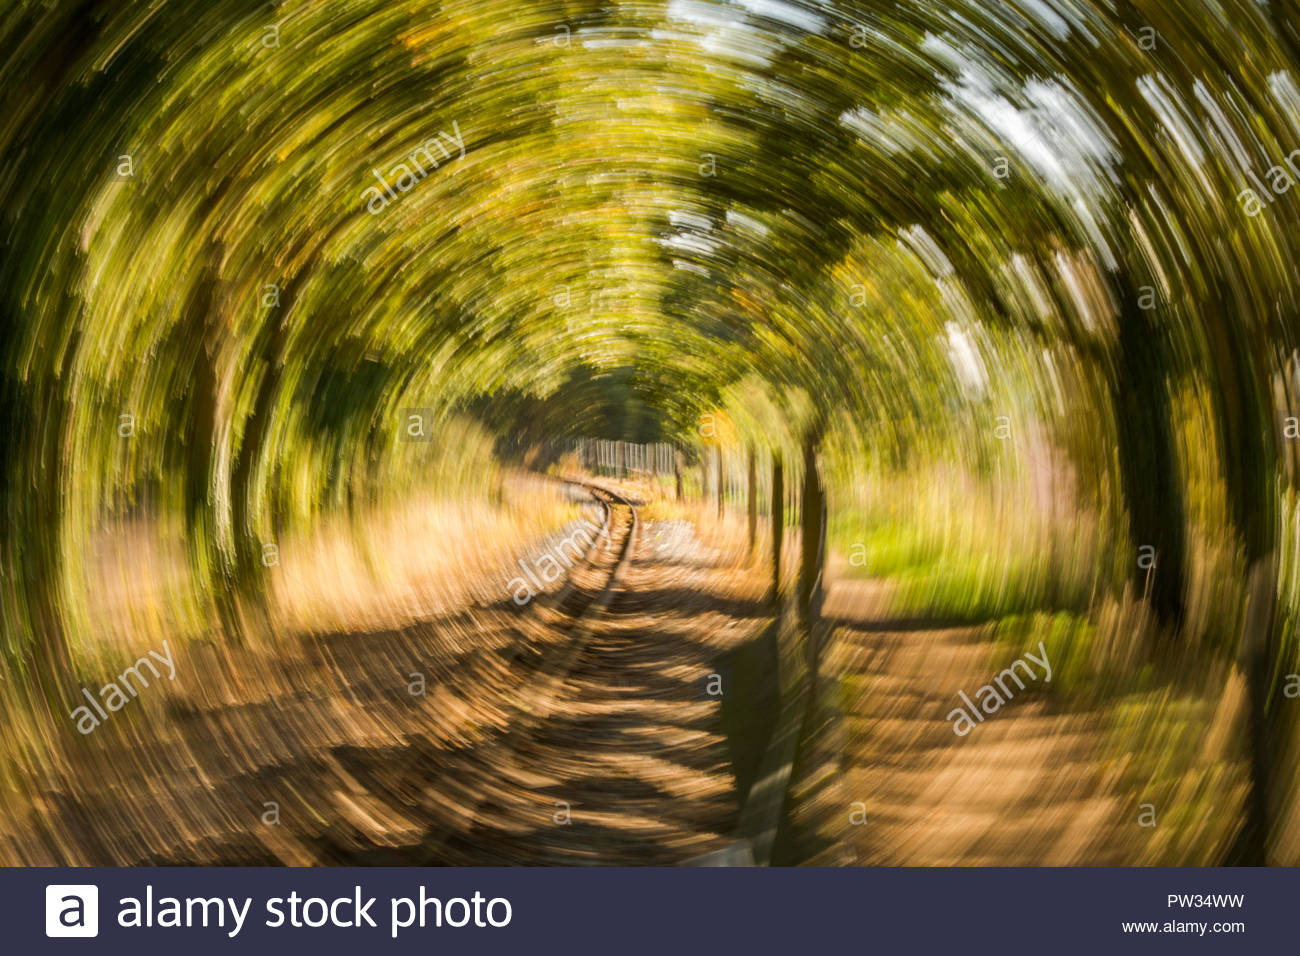 Railway track with rotation blur - Stock Image